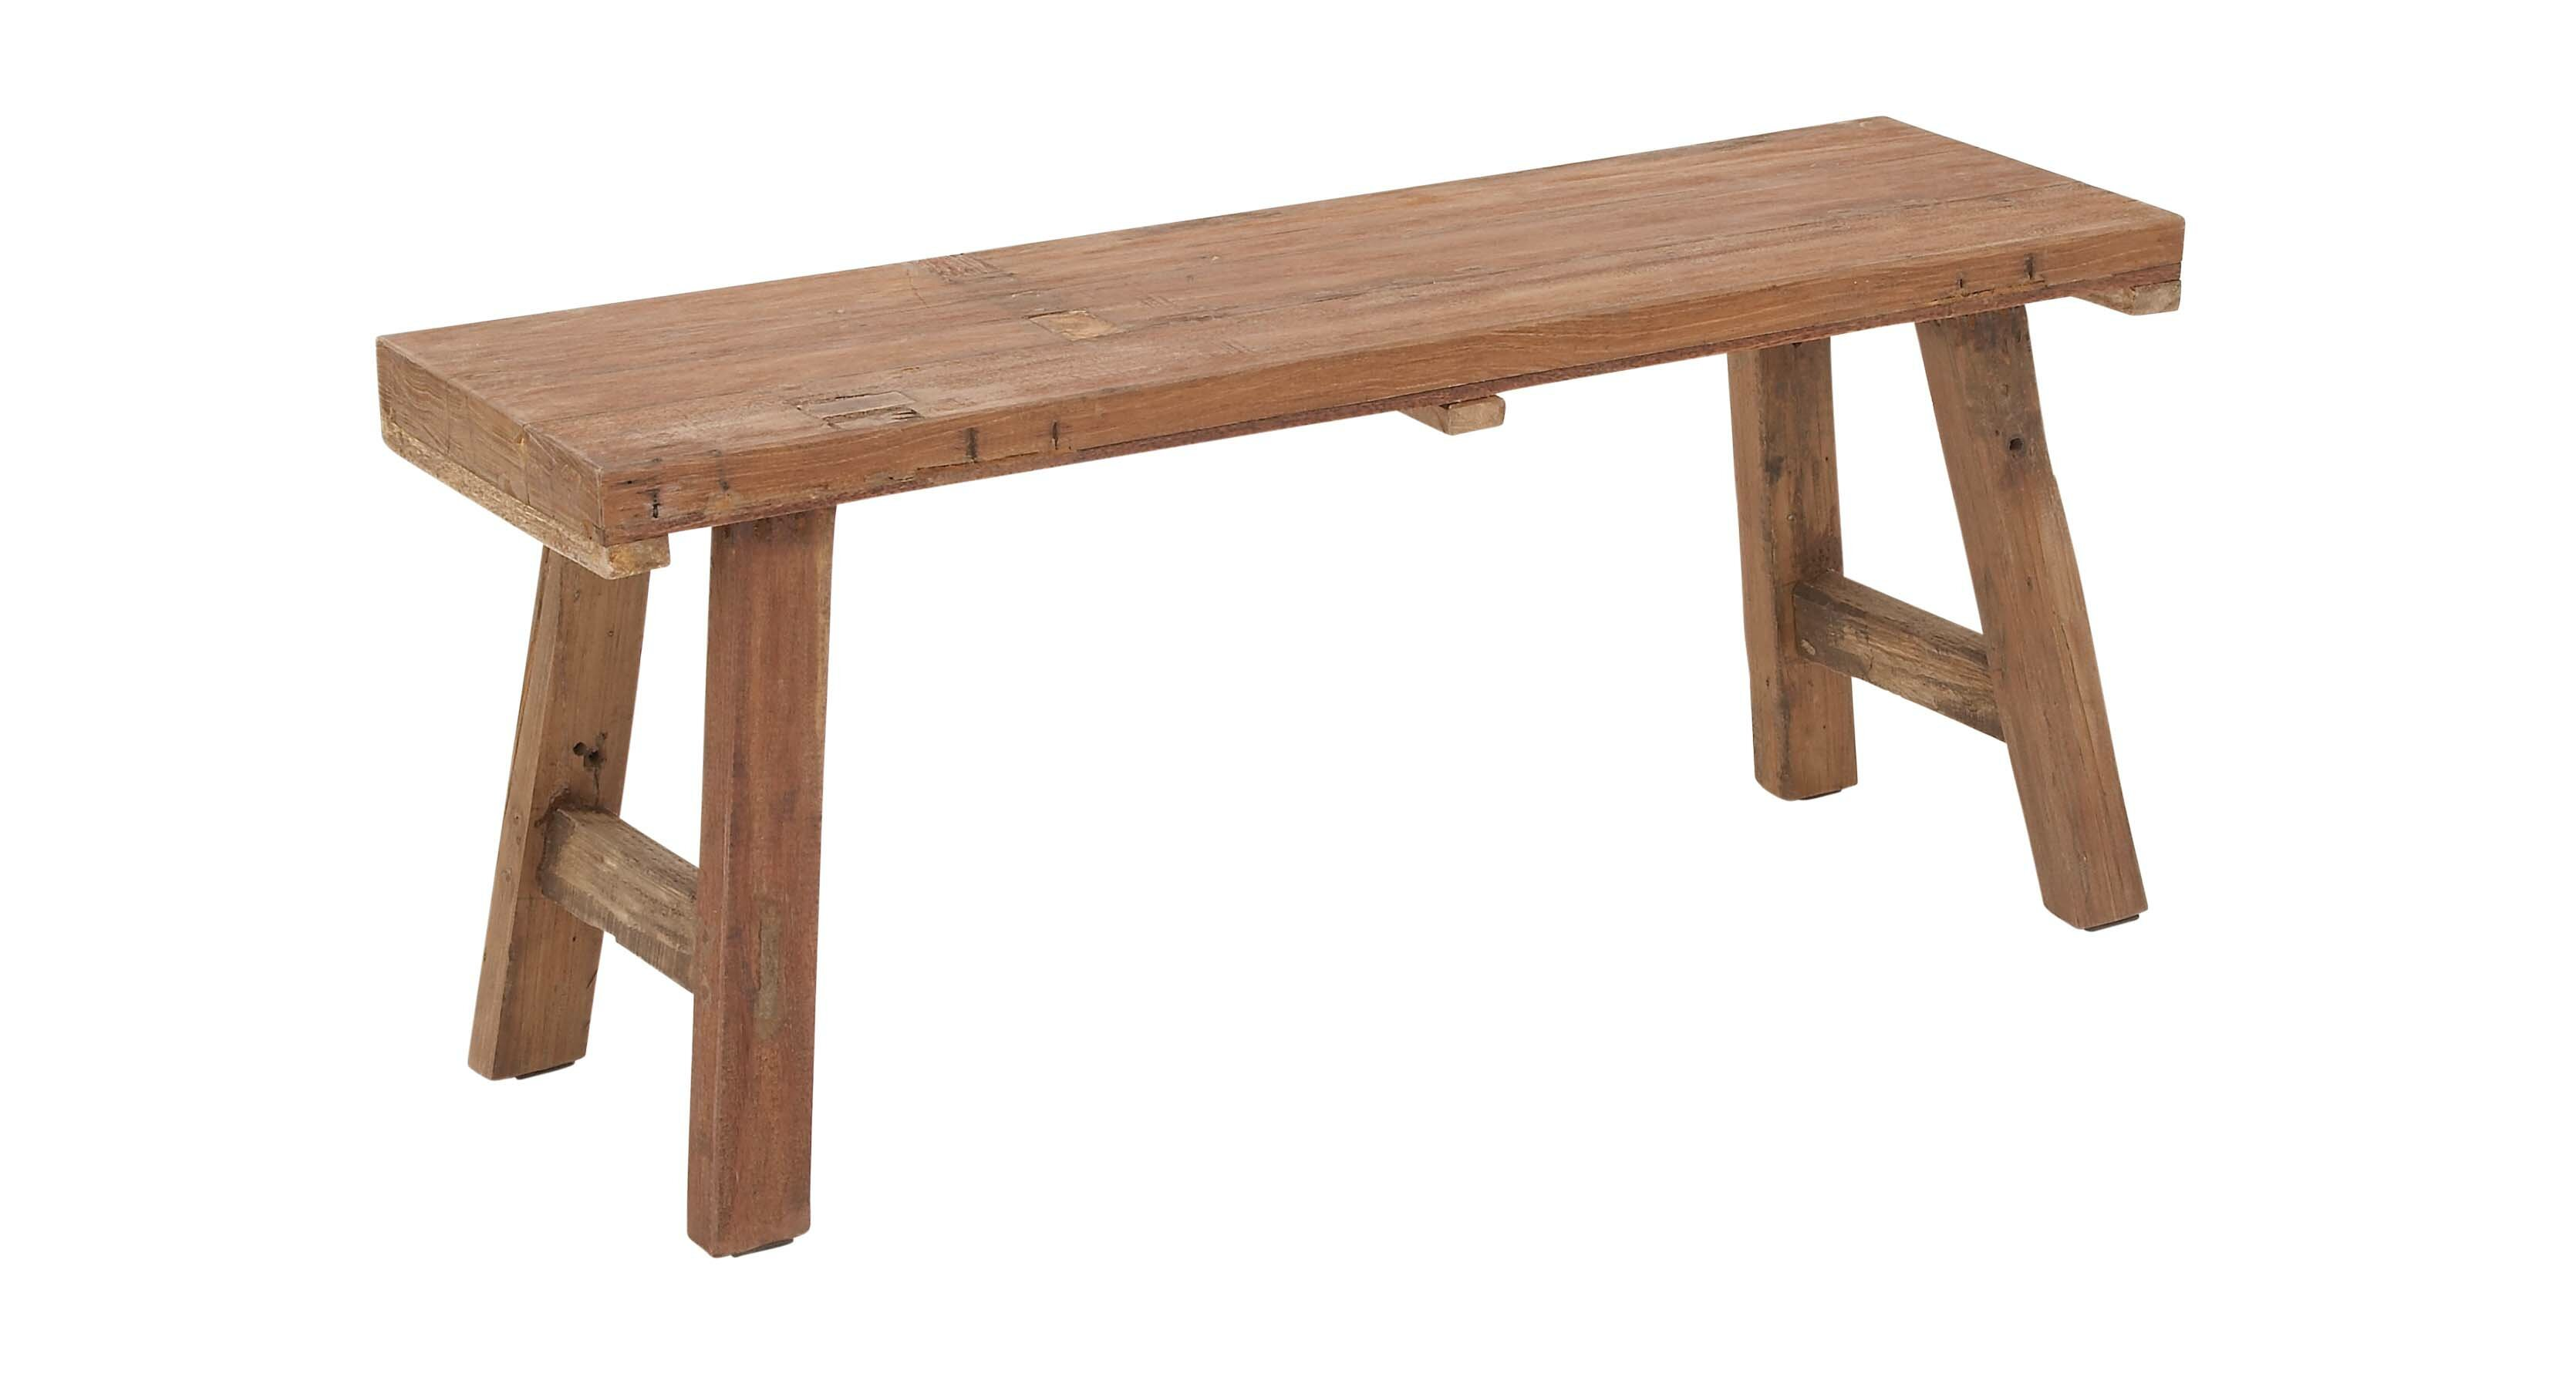 tone room uk world bench remo plans alluring oak san two engaging table marketion australia winning rustic beginnings dining trestle benches wood with sauder style